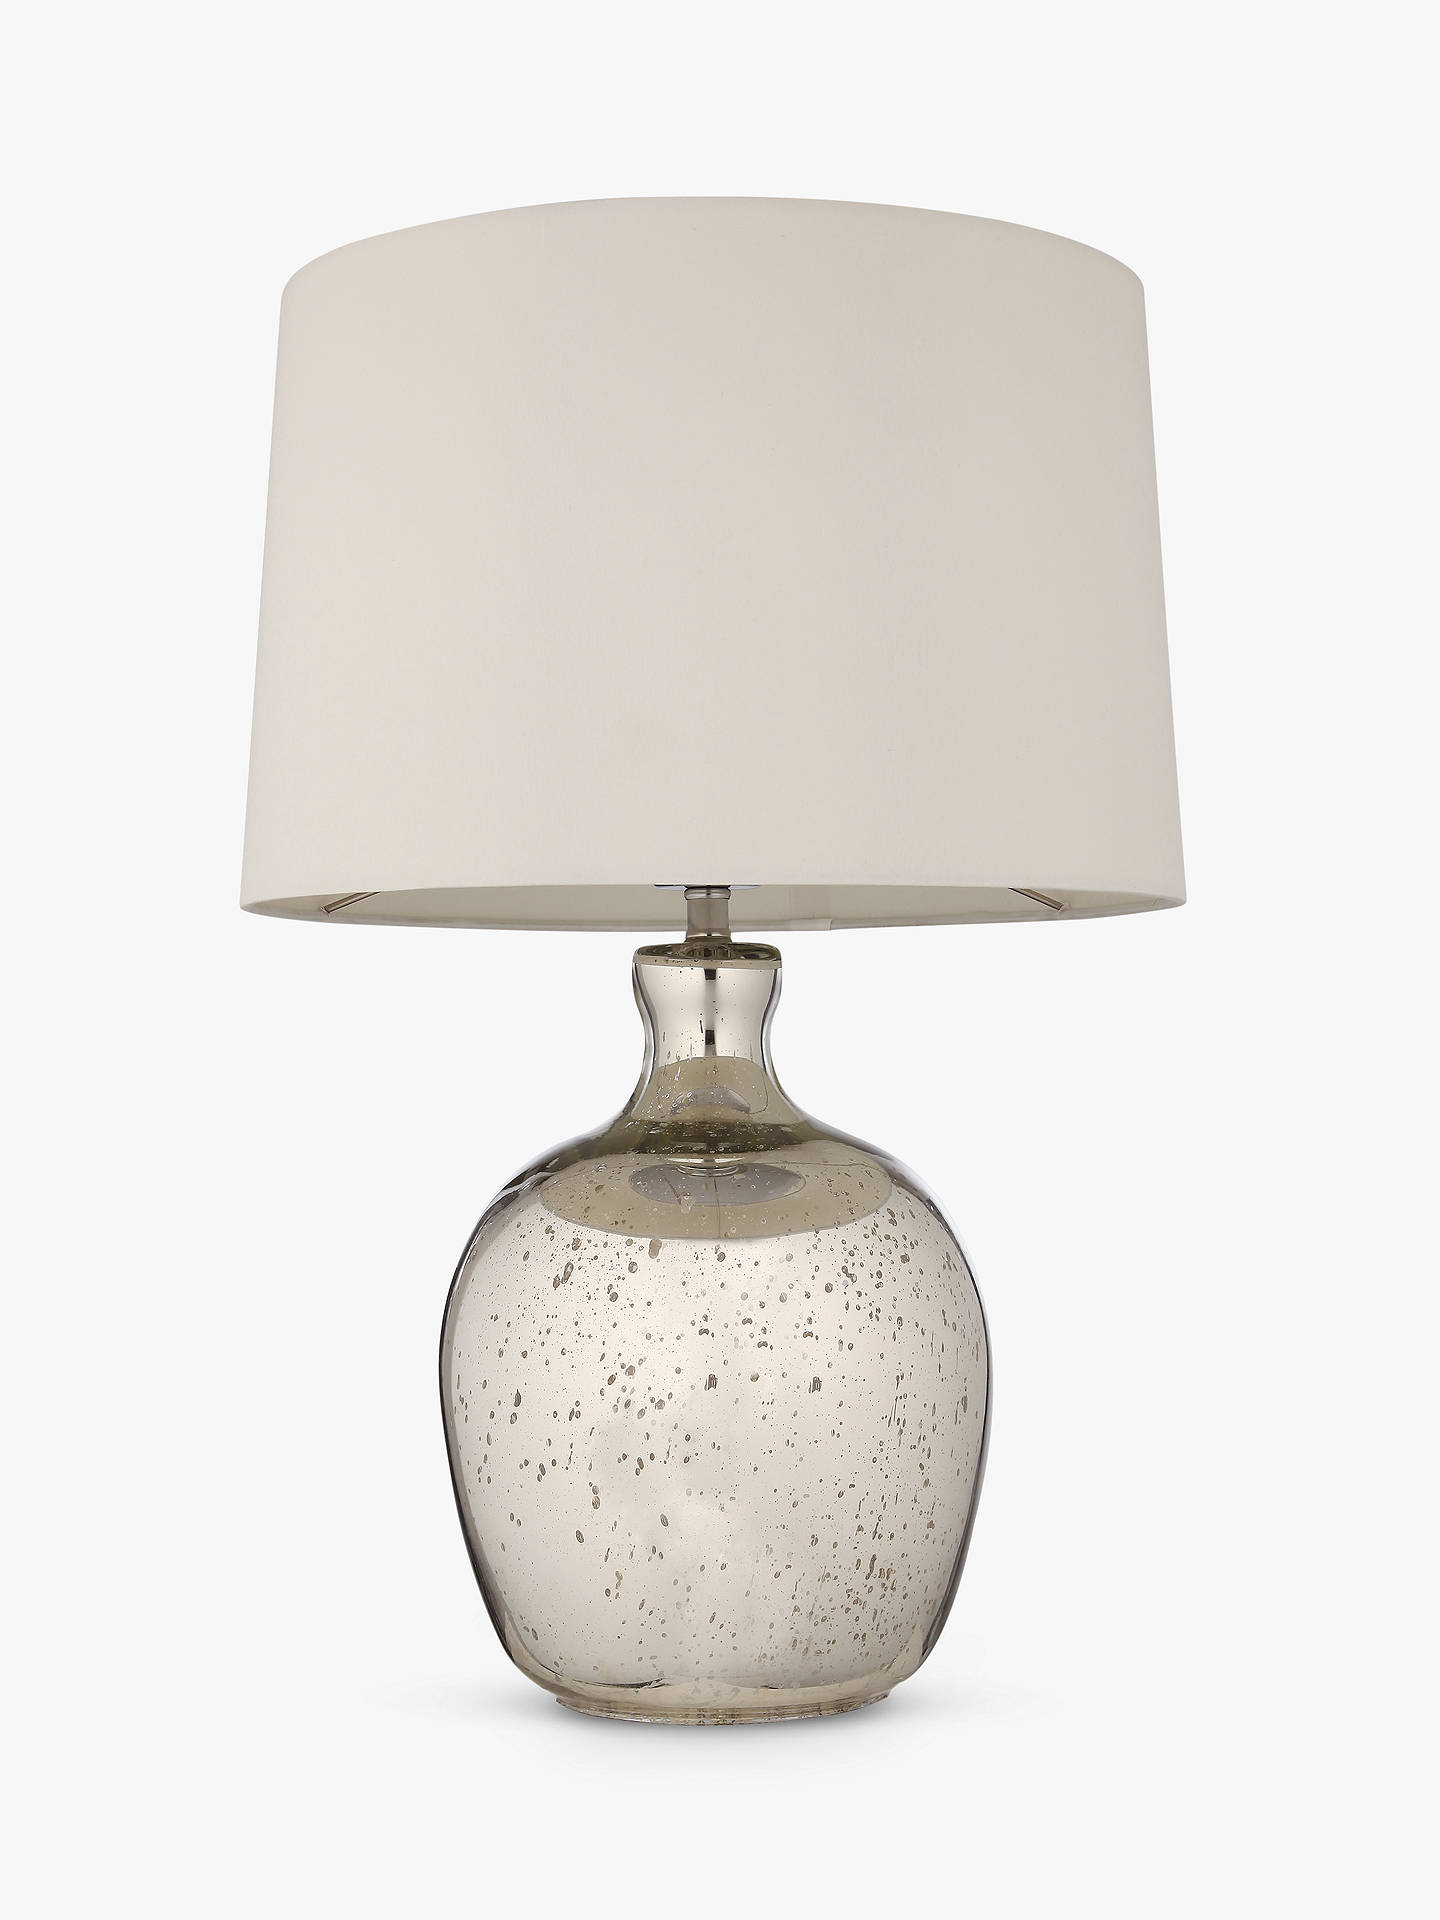 Buy John Lewis & Partners Tabitha Distressed Mirror Table Lamp Online at johnlewis.com